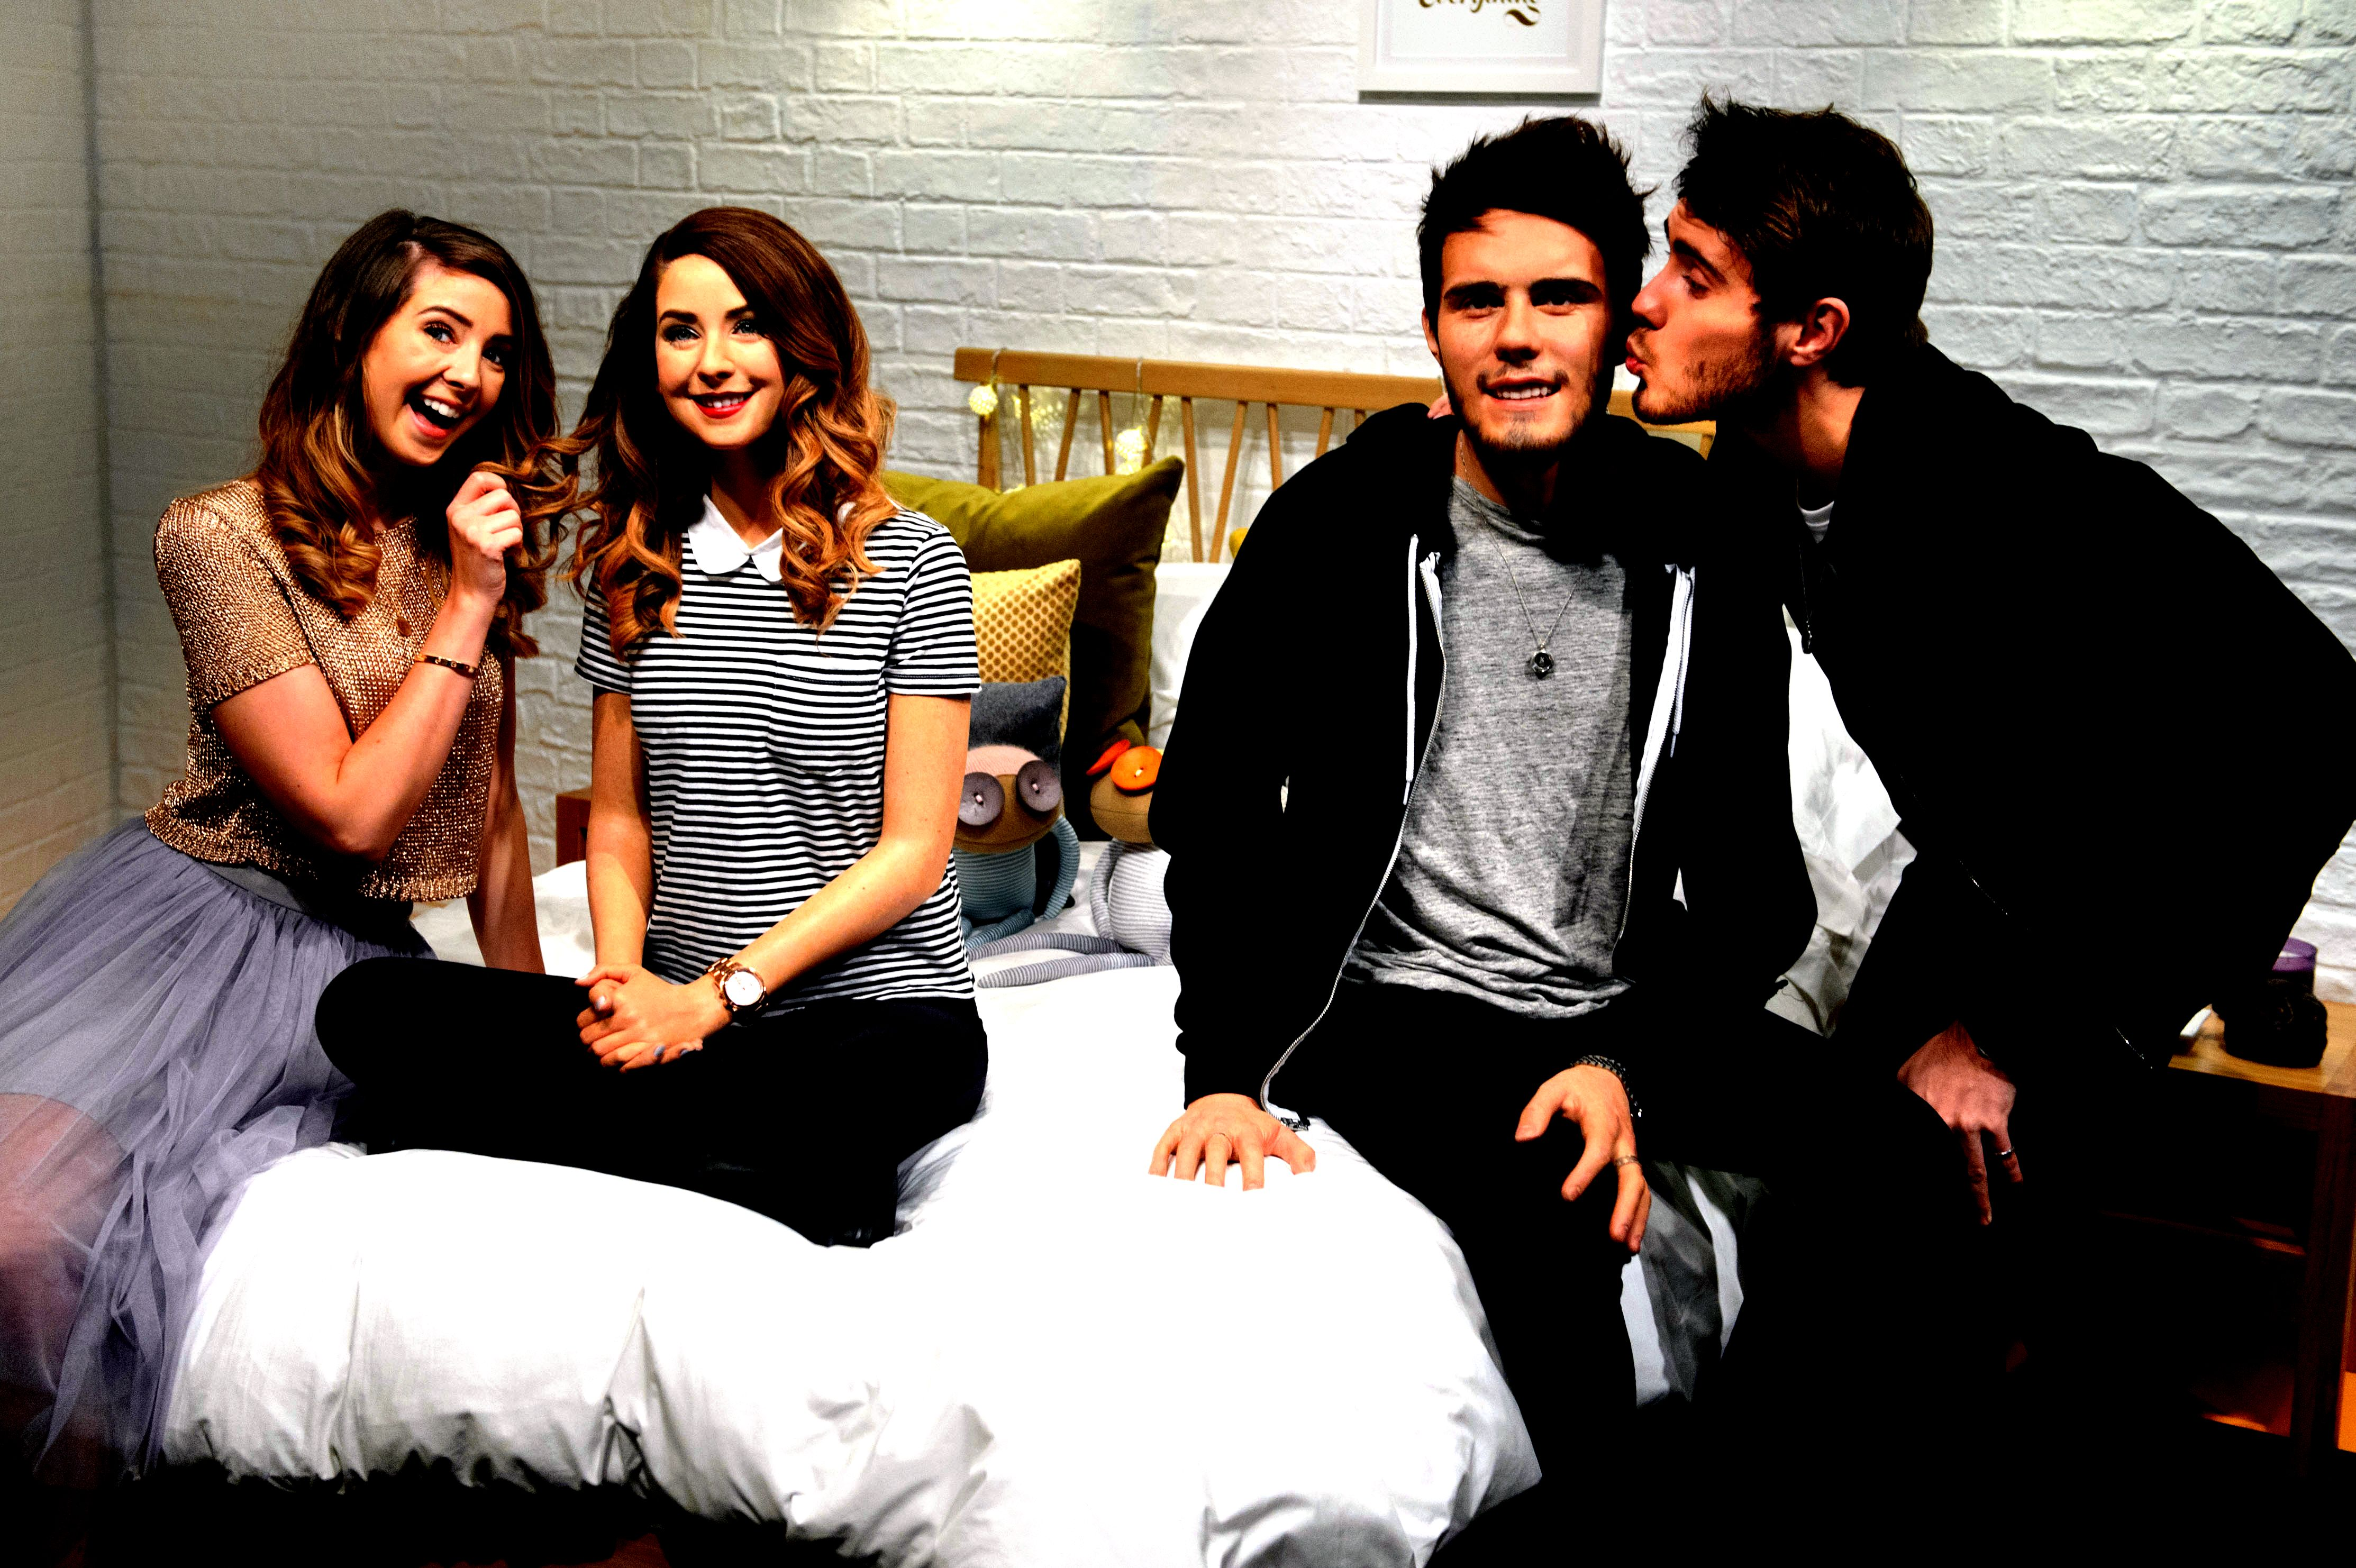 Youtube stars zoe sugg alfie deyes to make into wax statues for madame tussauds london development of their